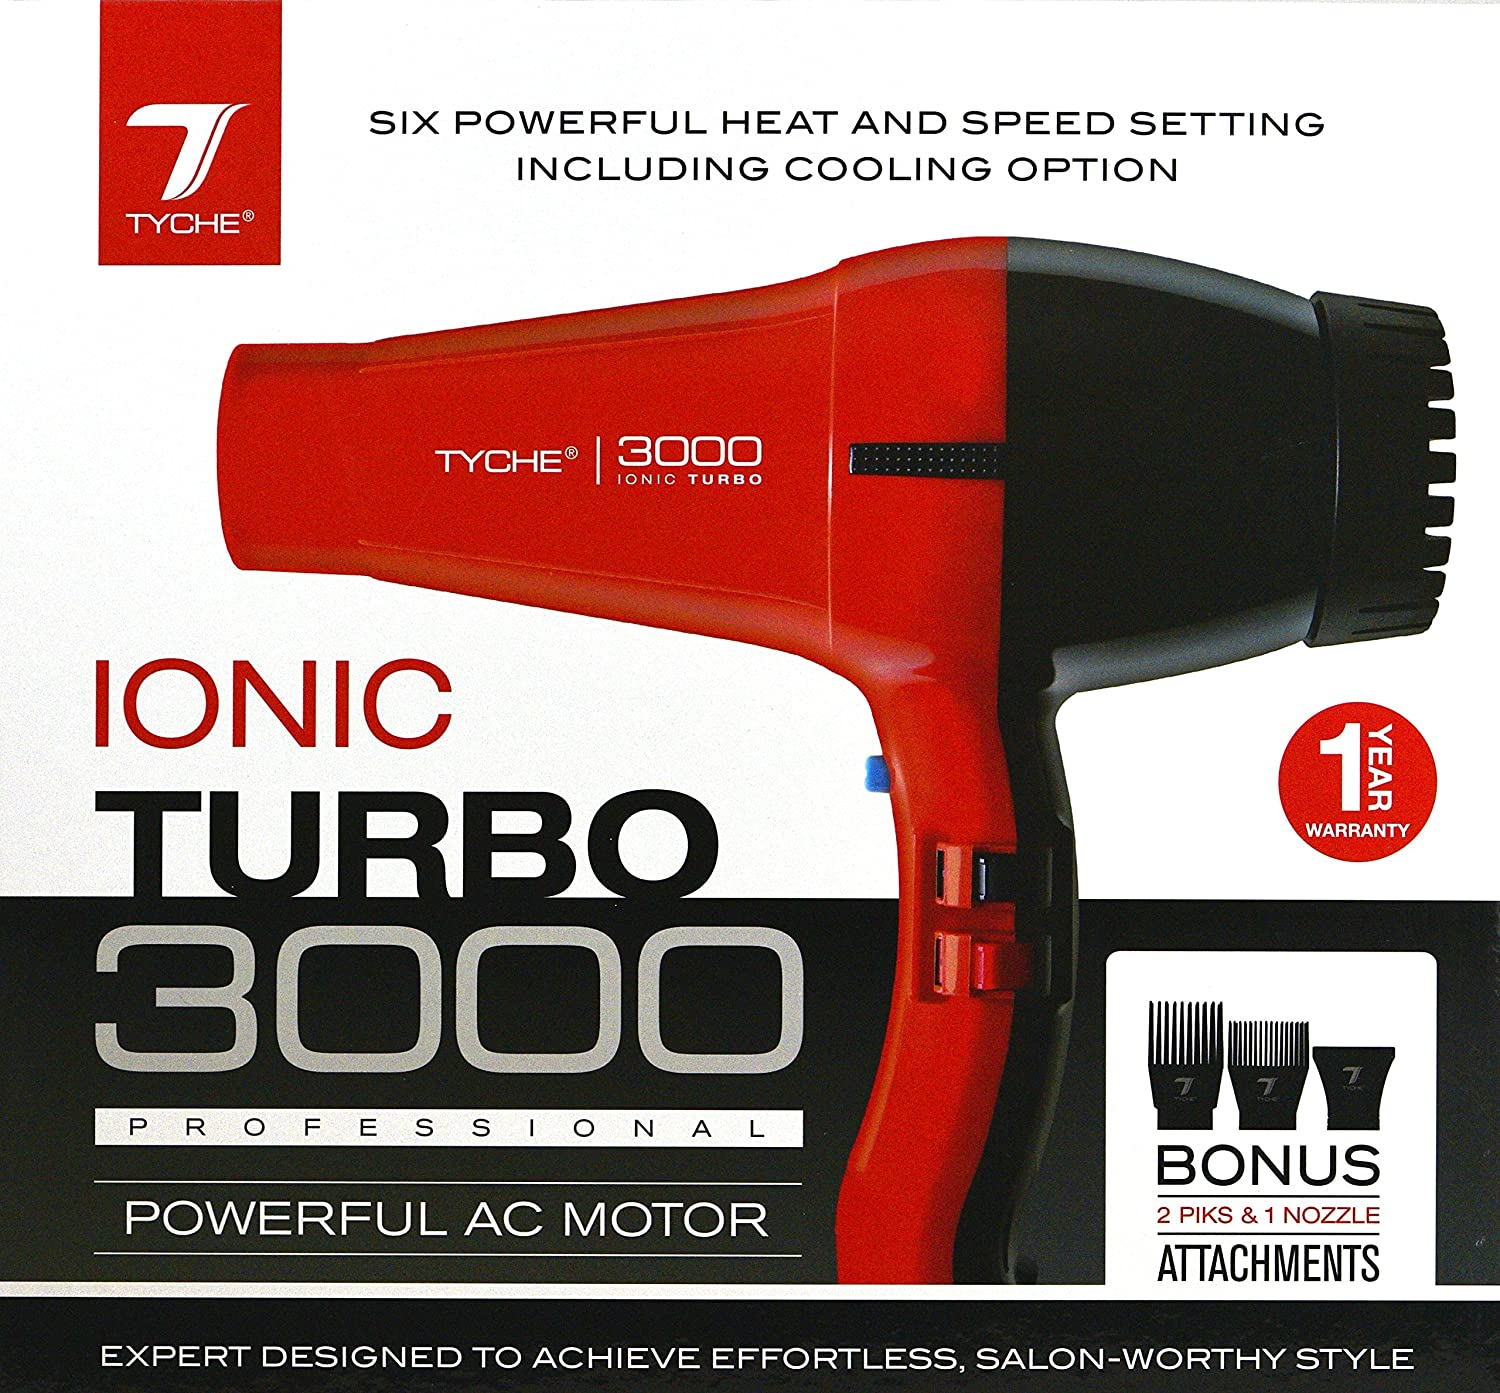 Amazon.com: Tyche Turbo Jet Ionic 3000 Professional Dryer (1 Year Warranty Included): Health & Personal Care